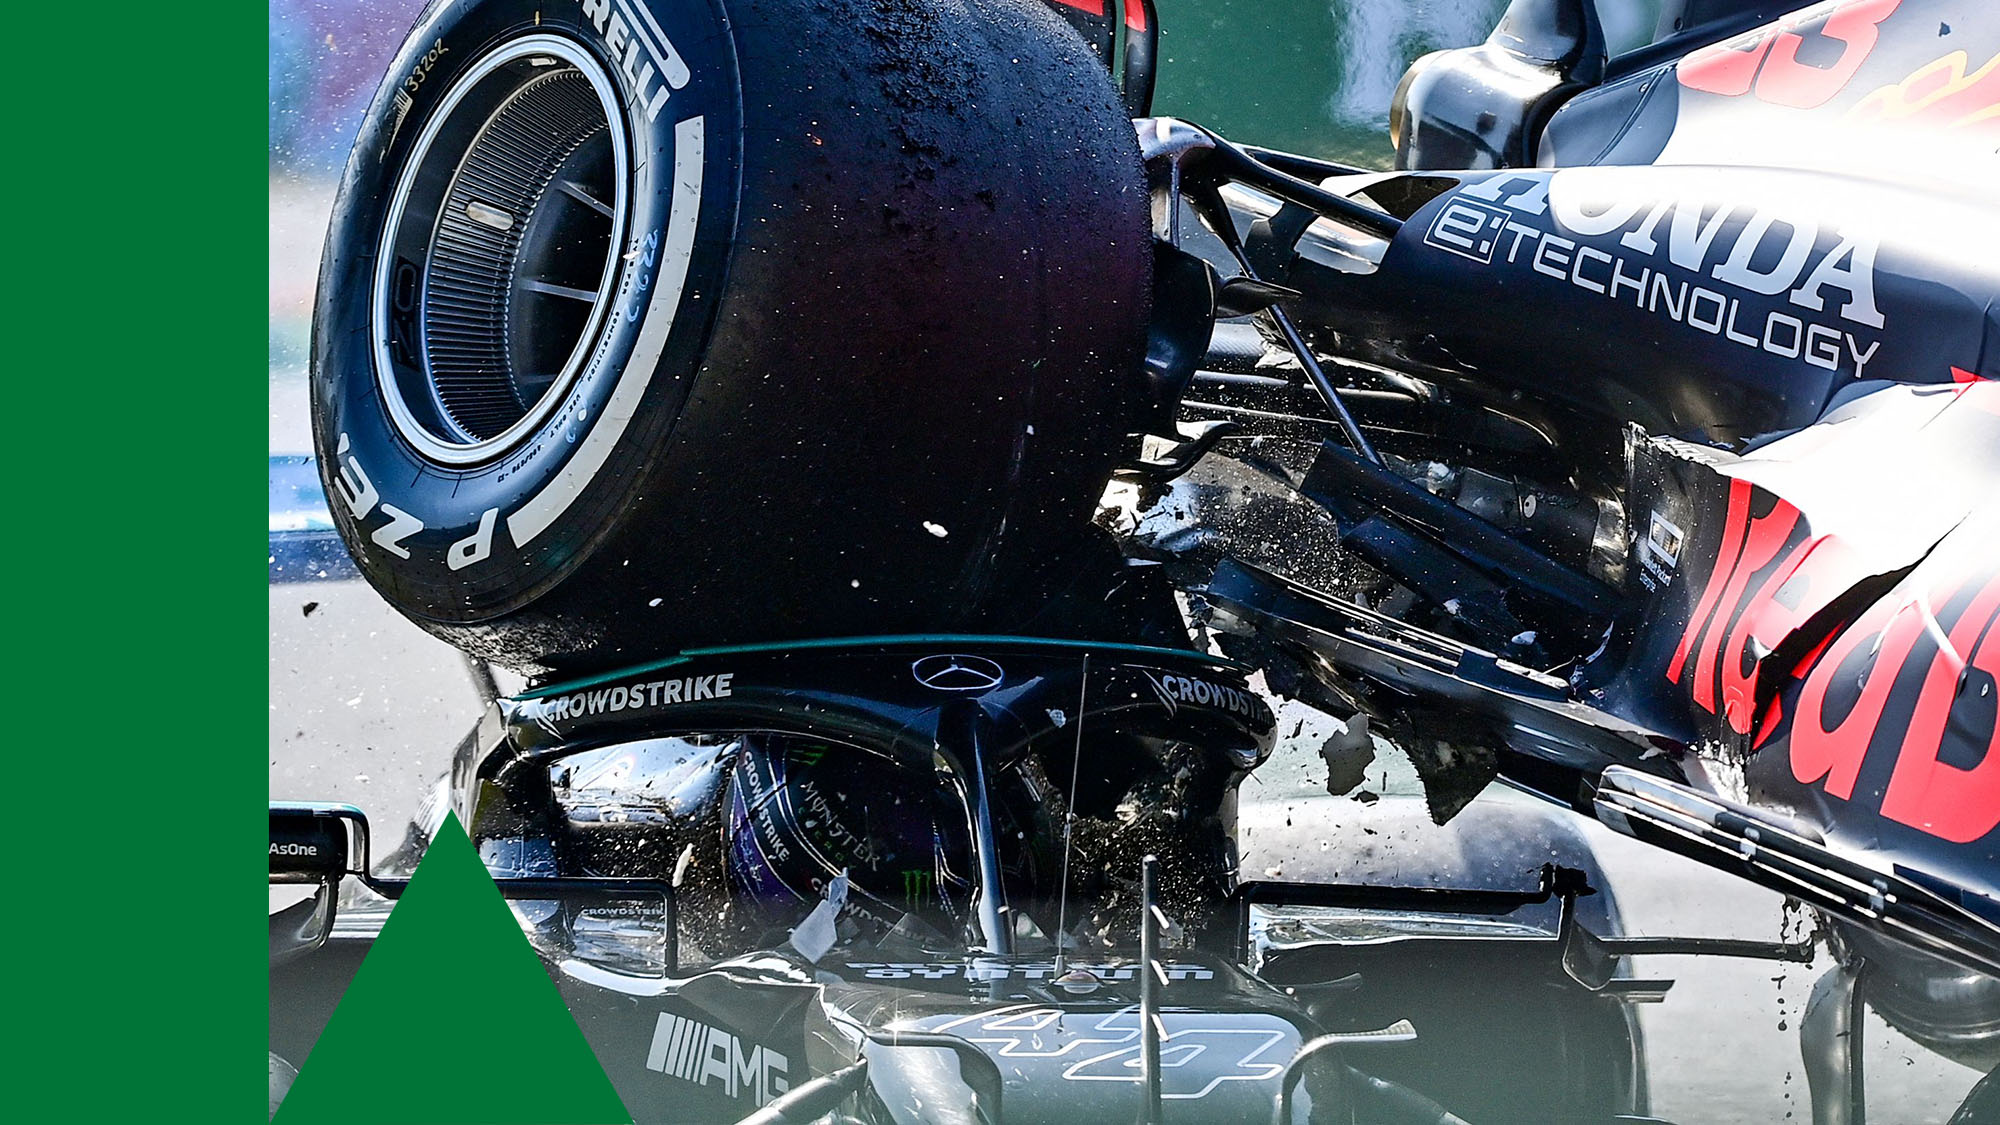 TOPSHOT - Mercedes' British driver Lewis Hamilton (L) and Red Bull's Dutch driver Max Verstappen collide during the Italian Formula One Grand Prix at the Autodromo Nazionale circuit in Monza, on September 12, 2021. (Photo by ANDREJ ISAKOVIC / AFP) (Photo by ANDREJ ISAKOVIC/AFP via Getty Images)